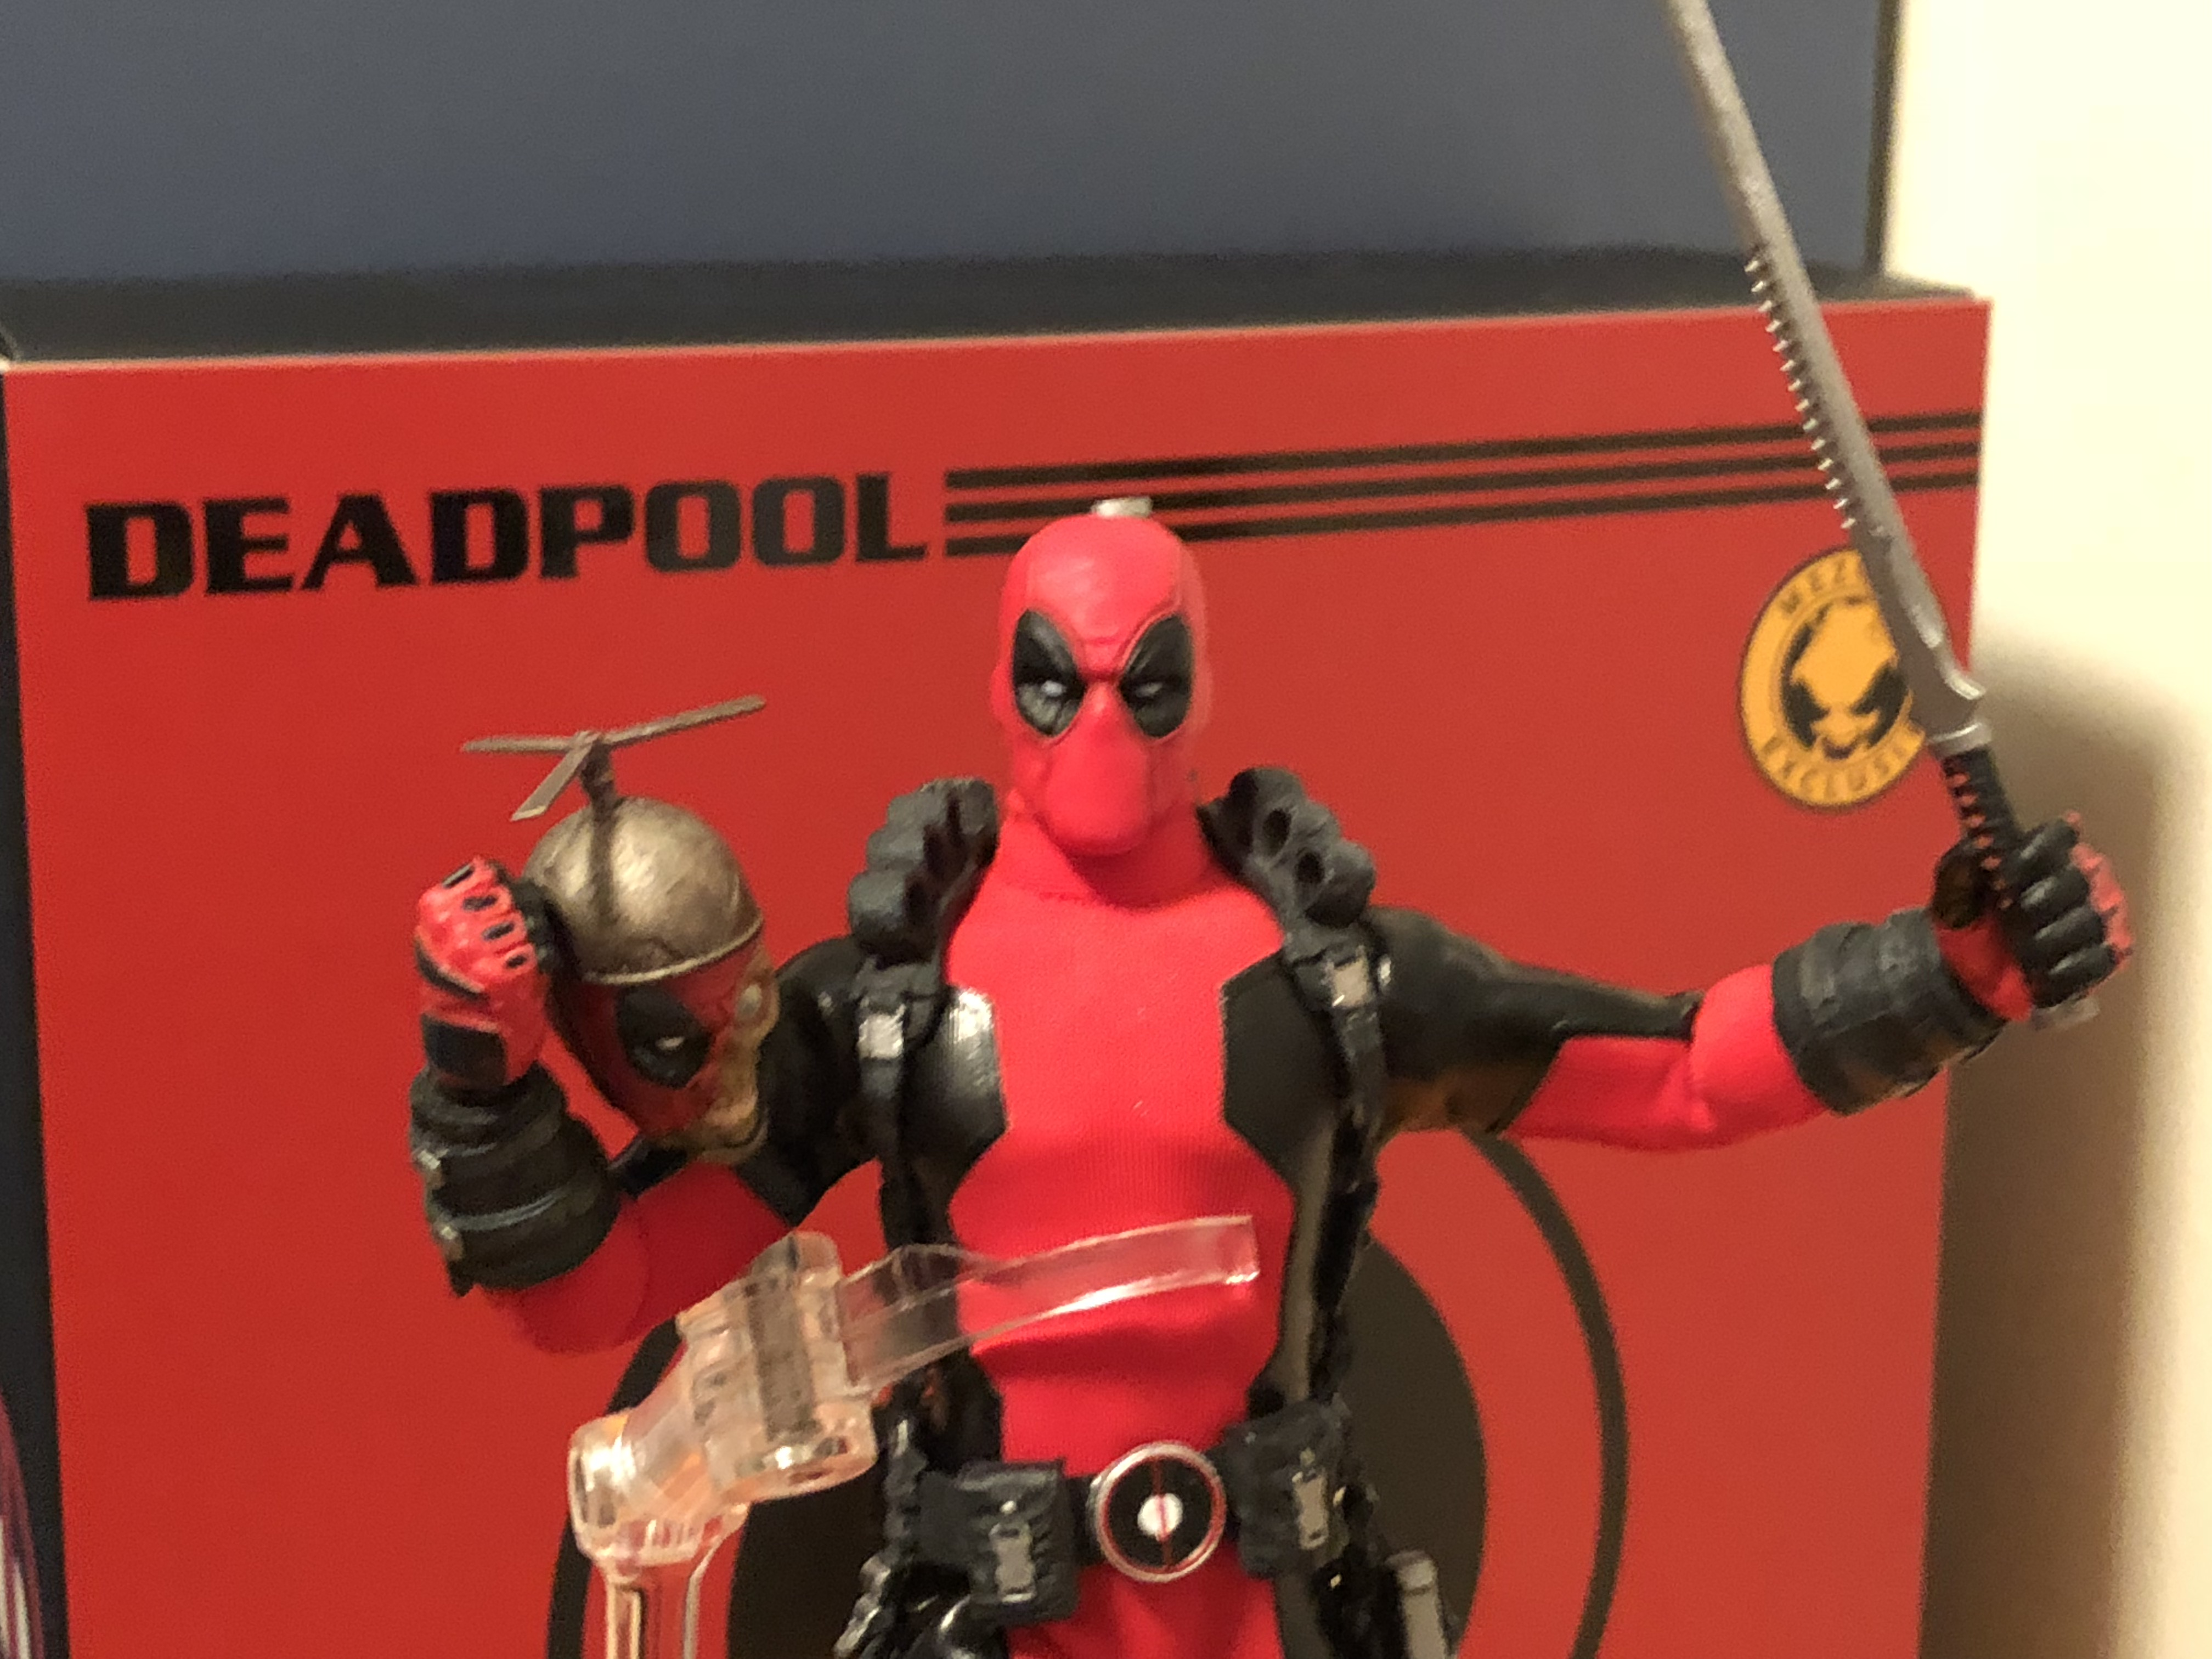 Unboxing/Review: Mezco One:12 collective Deadpool classic Red action figure